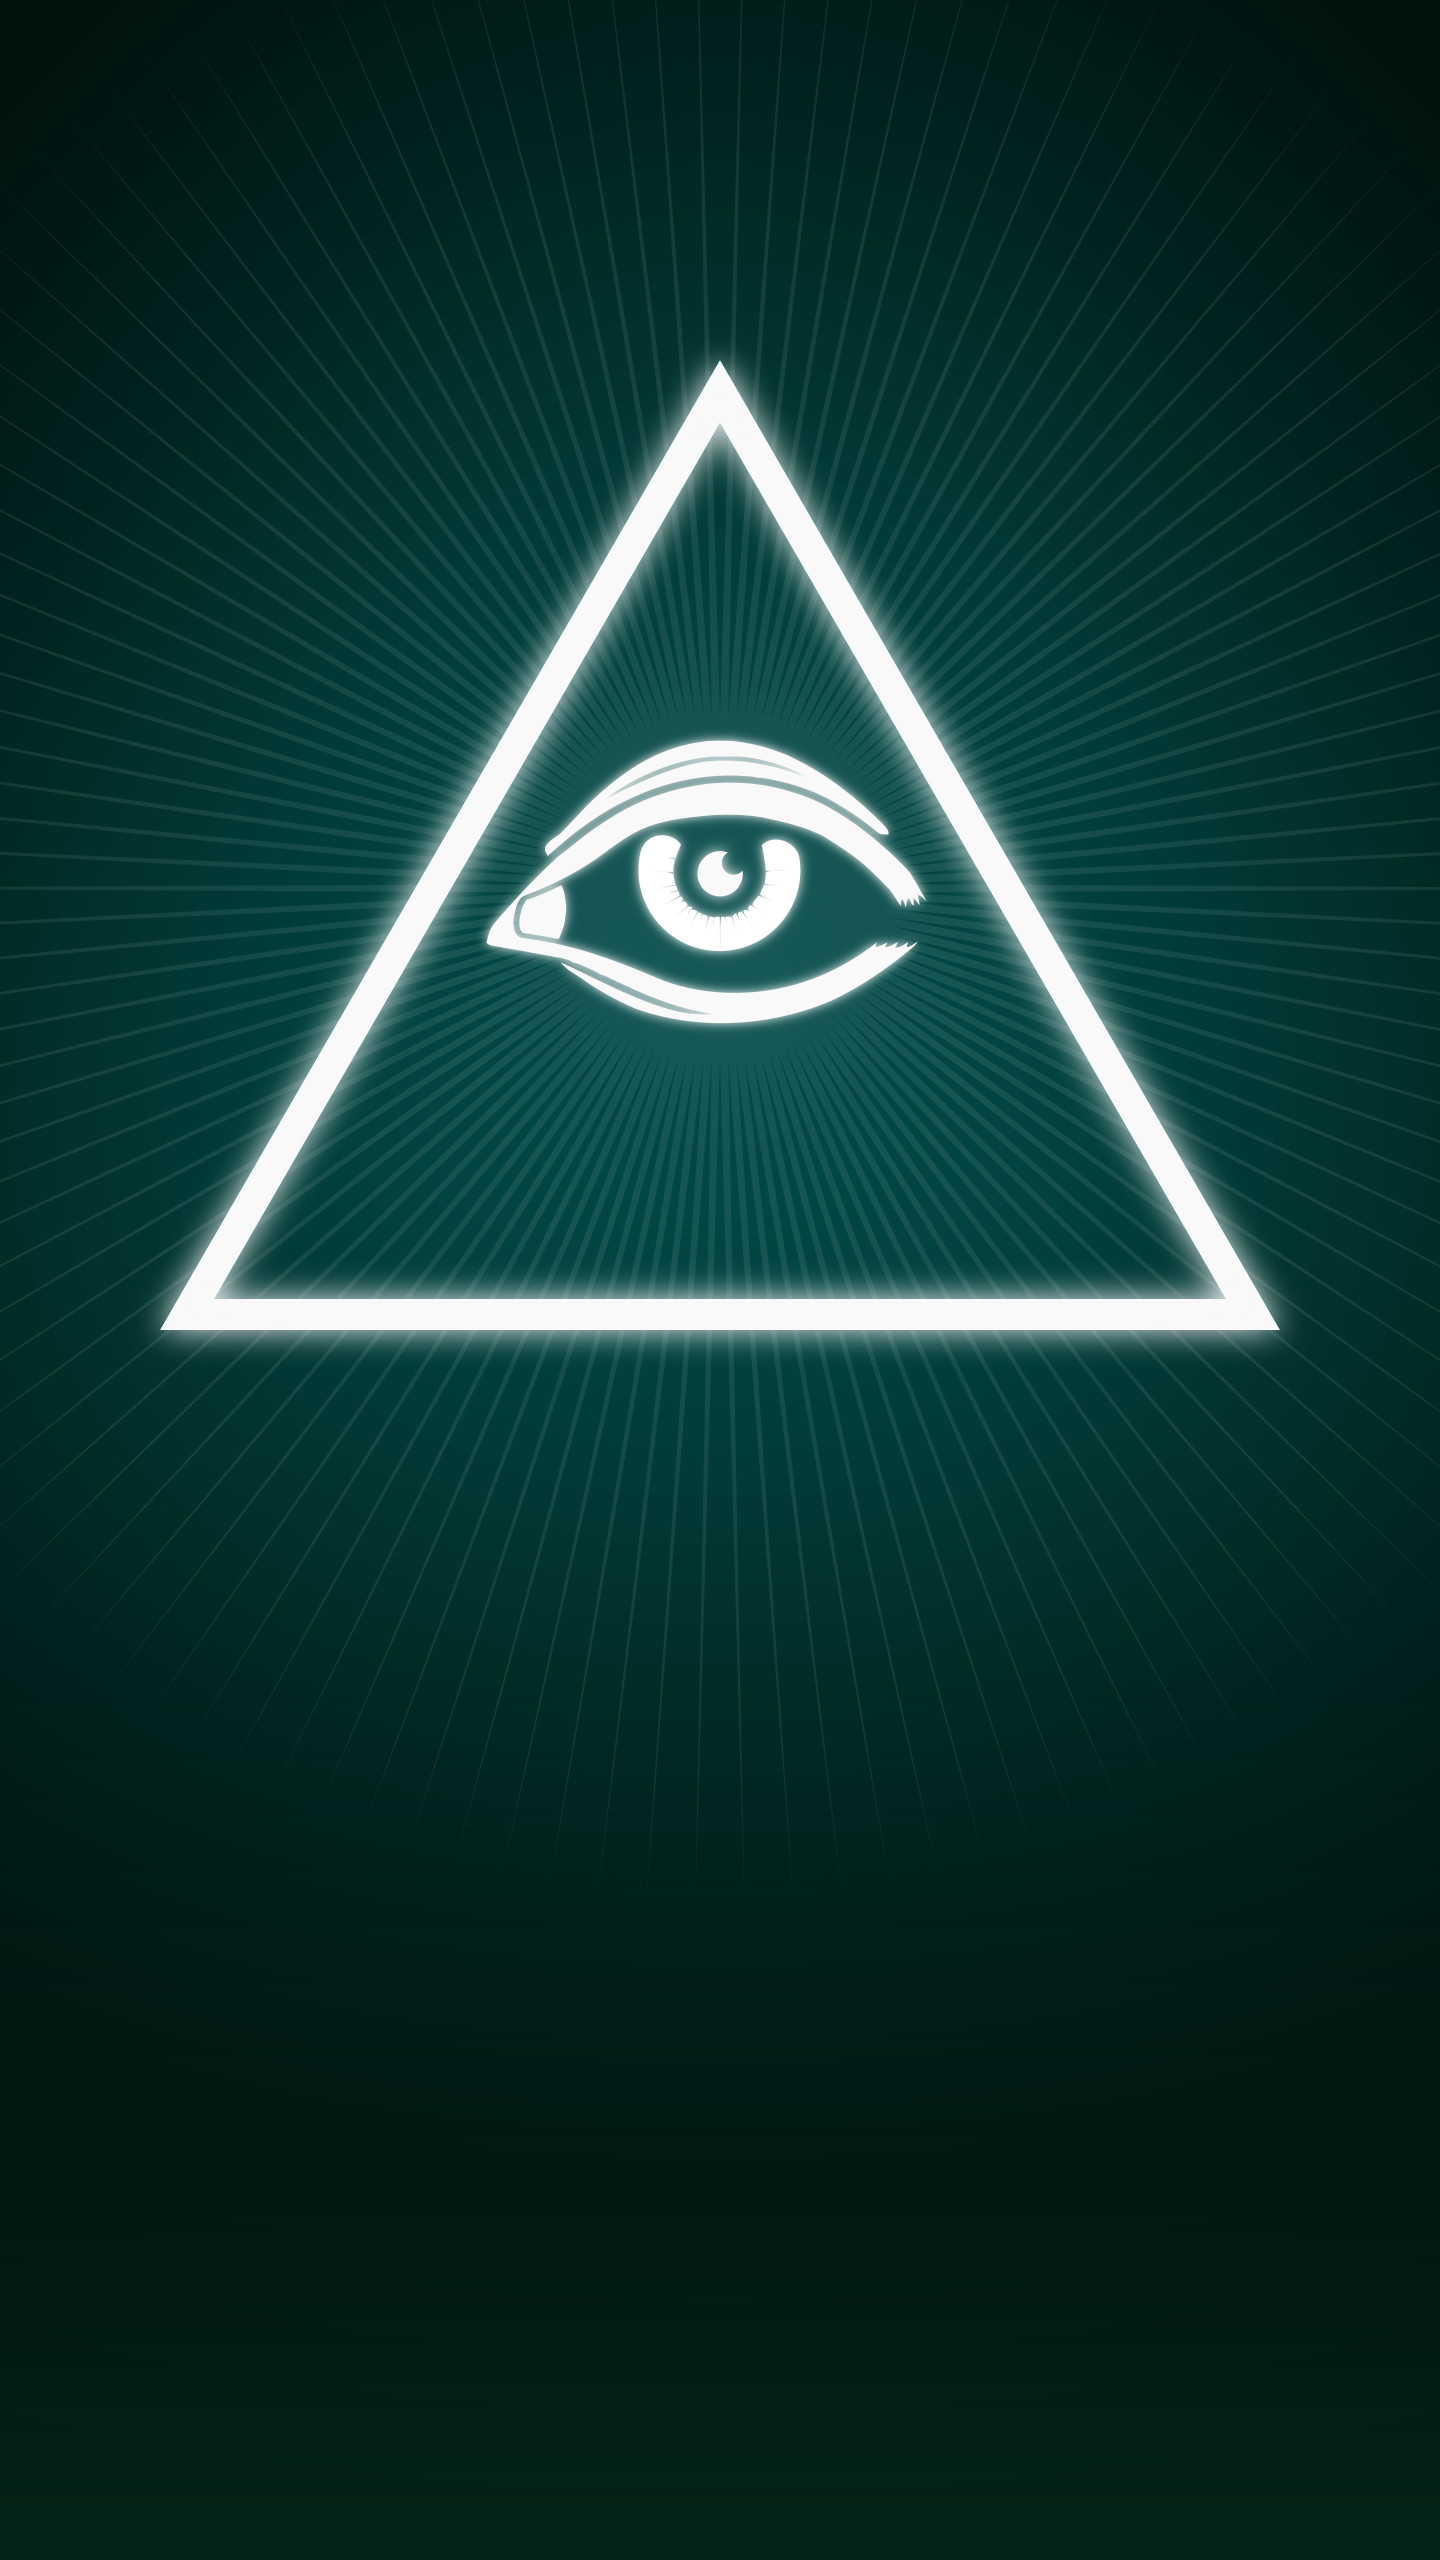 1440x2560 Illuminati Wallpaper Hd